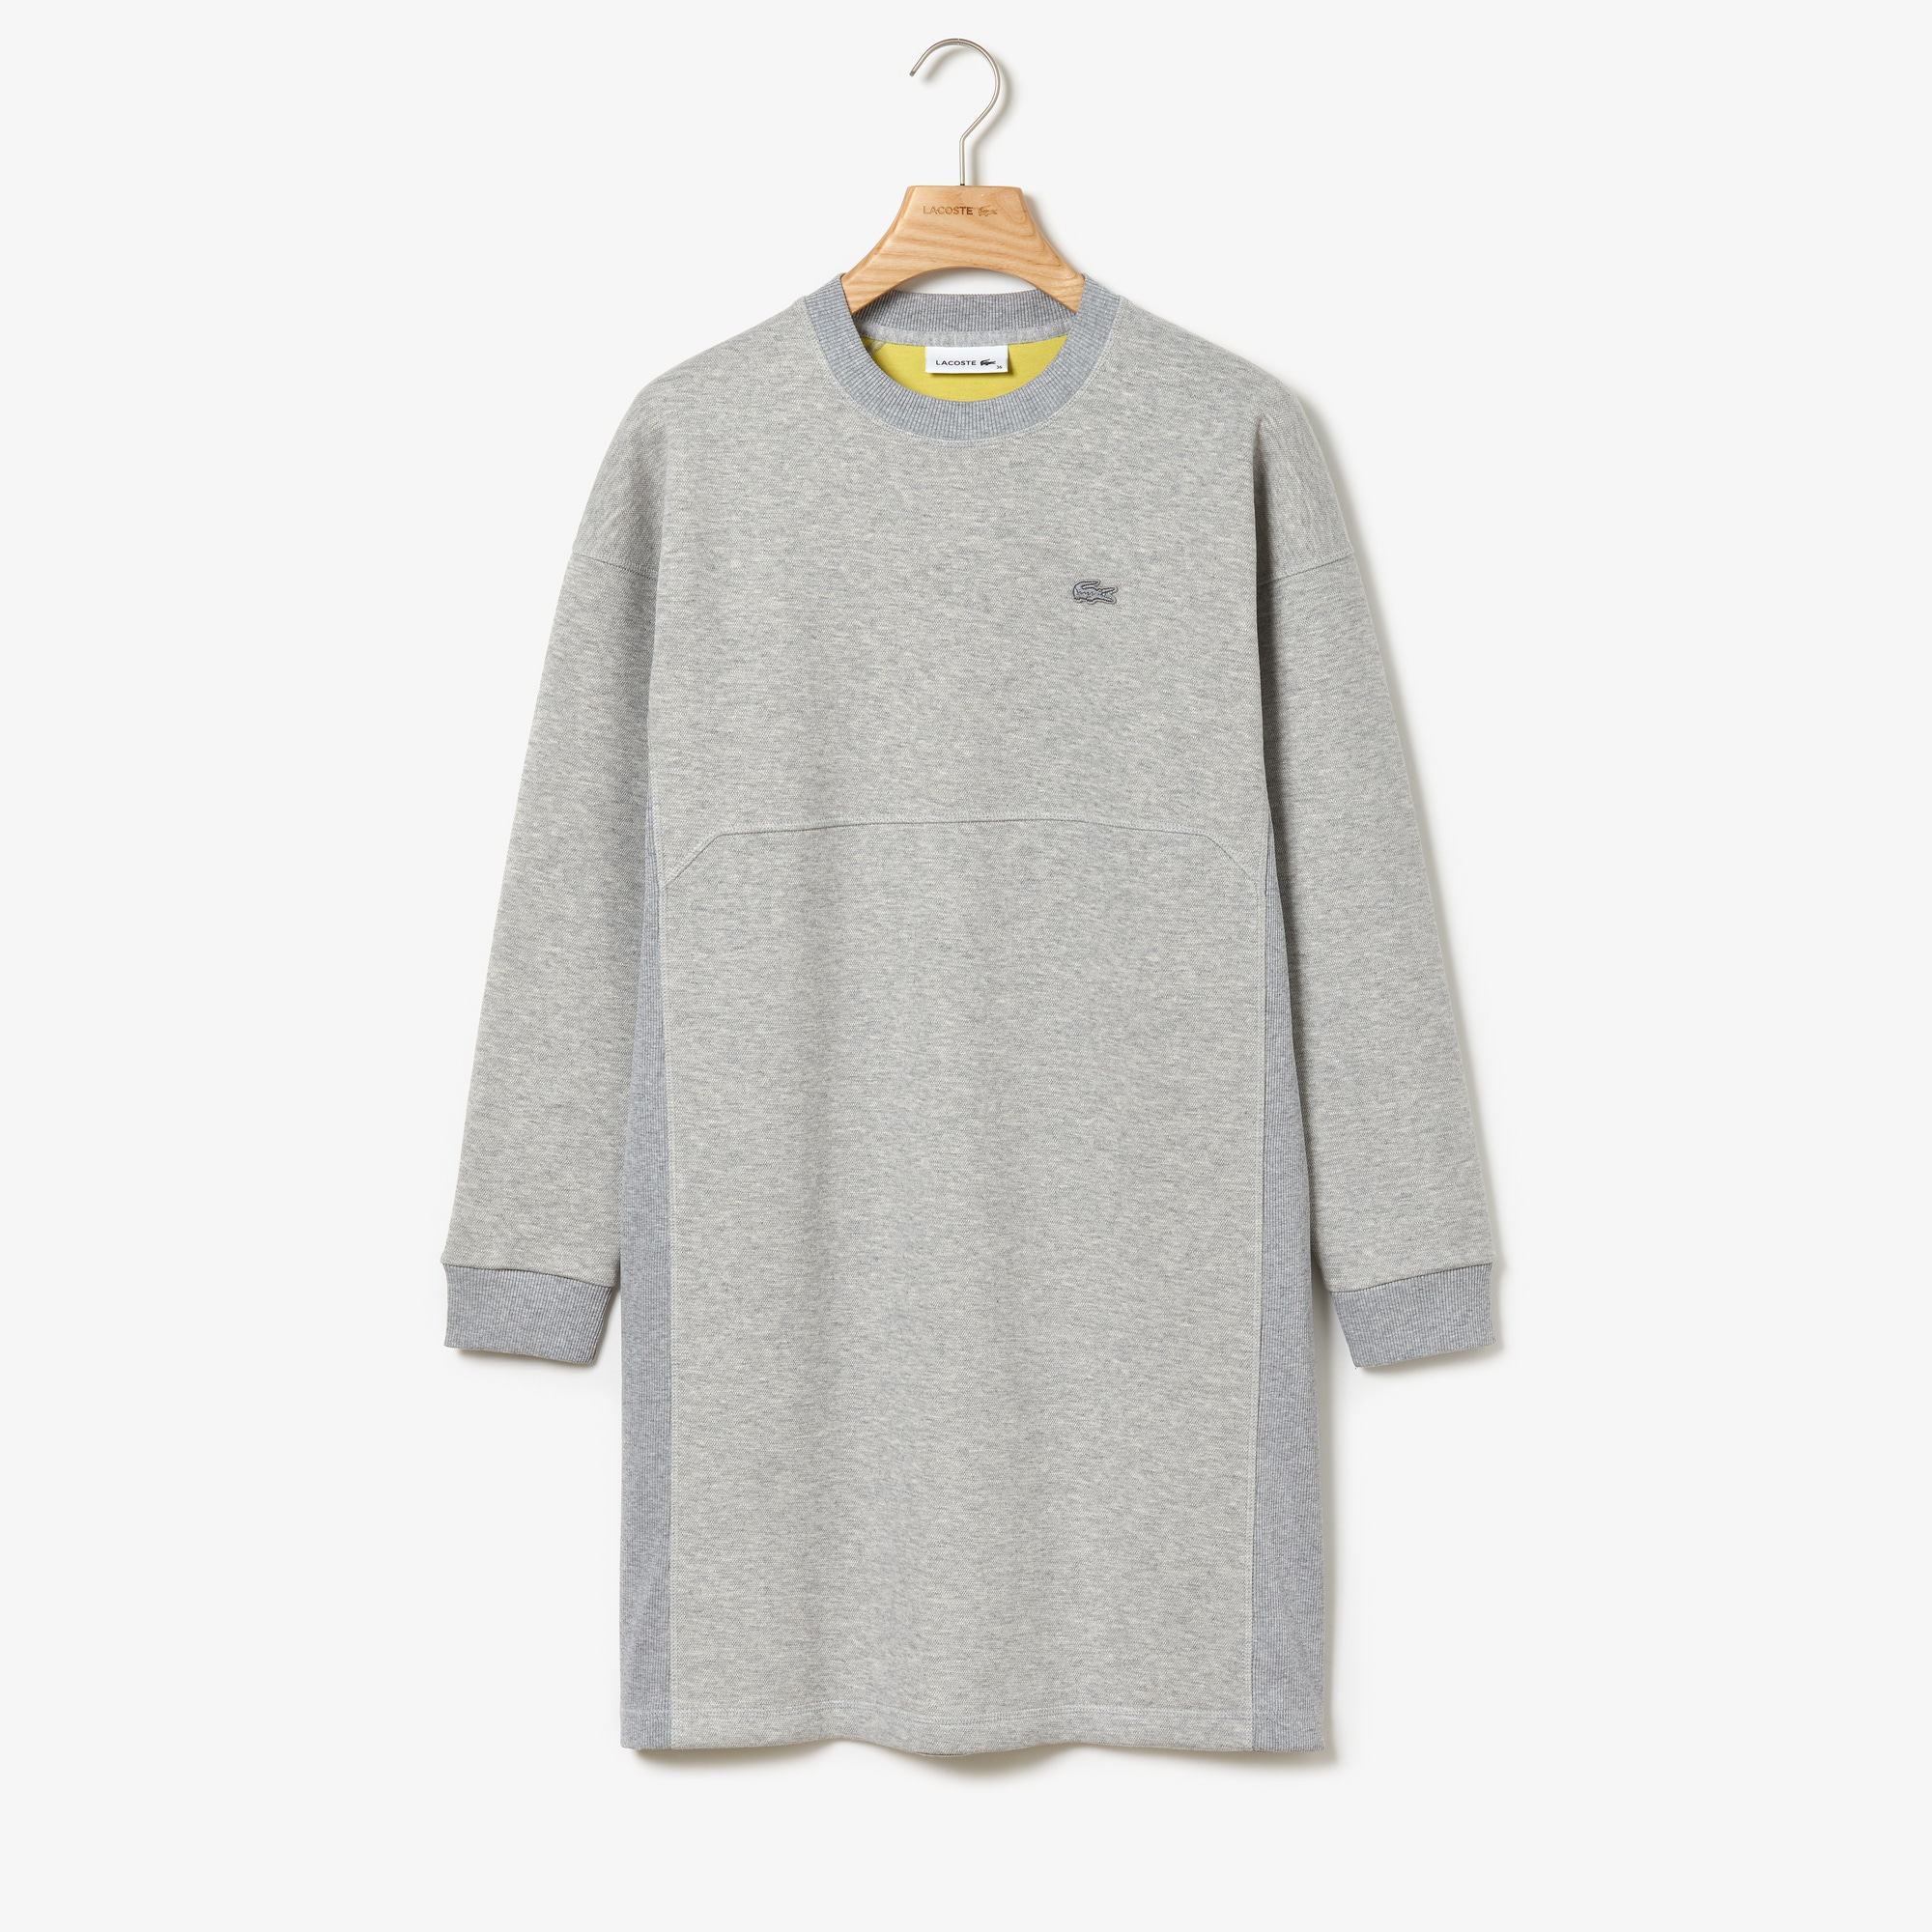 Robe sweatshirt Lacoste Motion double face à empiècements côtelés